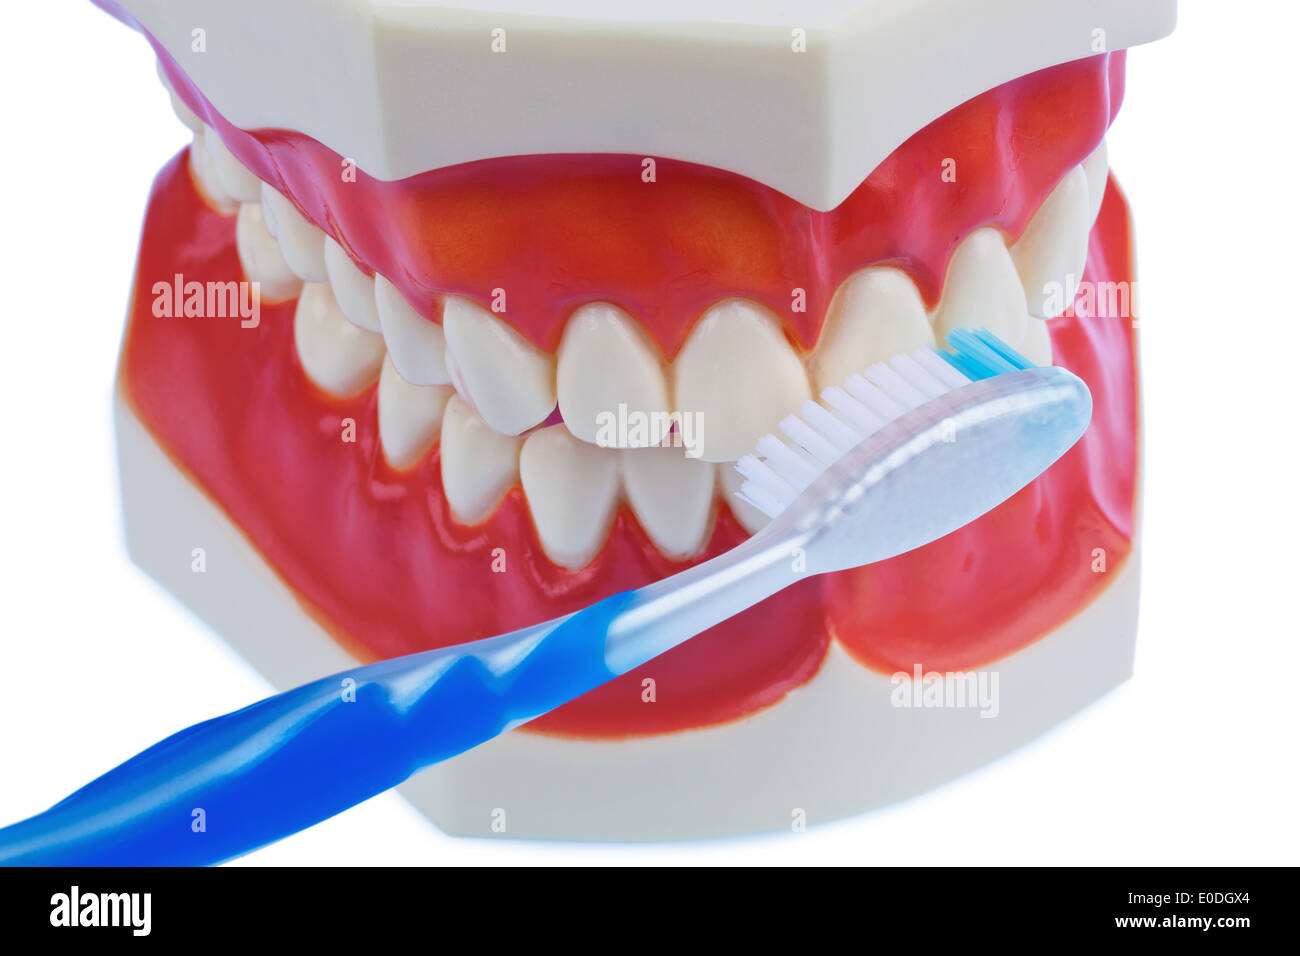 A dental model with toothbrush with the tooth clean. Dental cleaning prevents caries., Ein Zahnmodell mit Zahnbuerste beim Zaehn Stock Photo